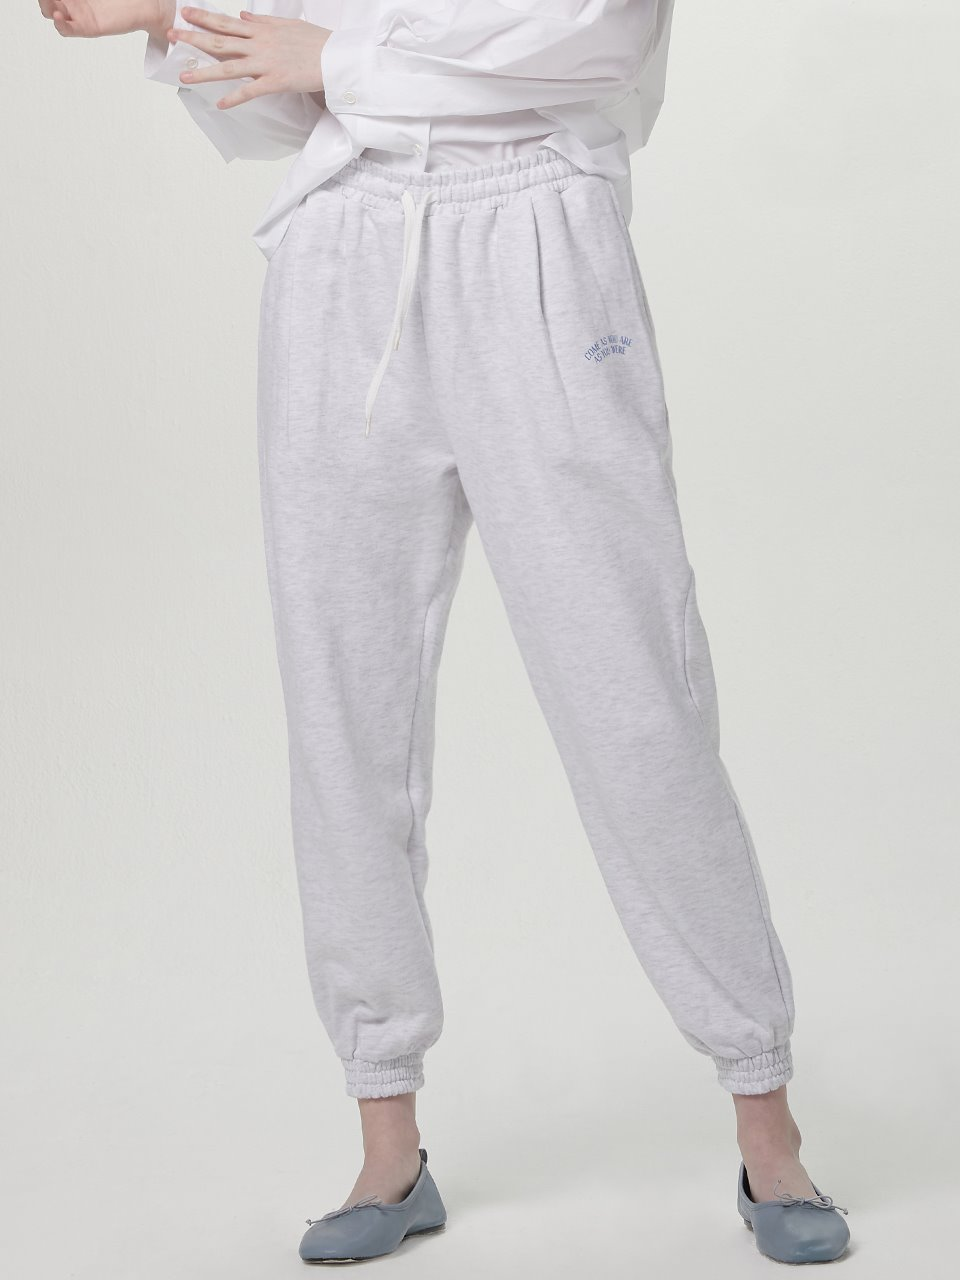 Come as jogger pants - White melange